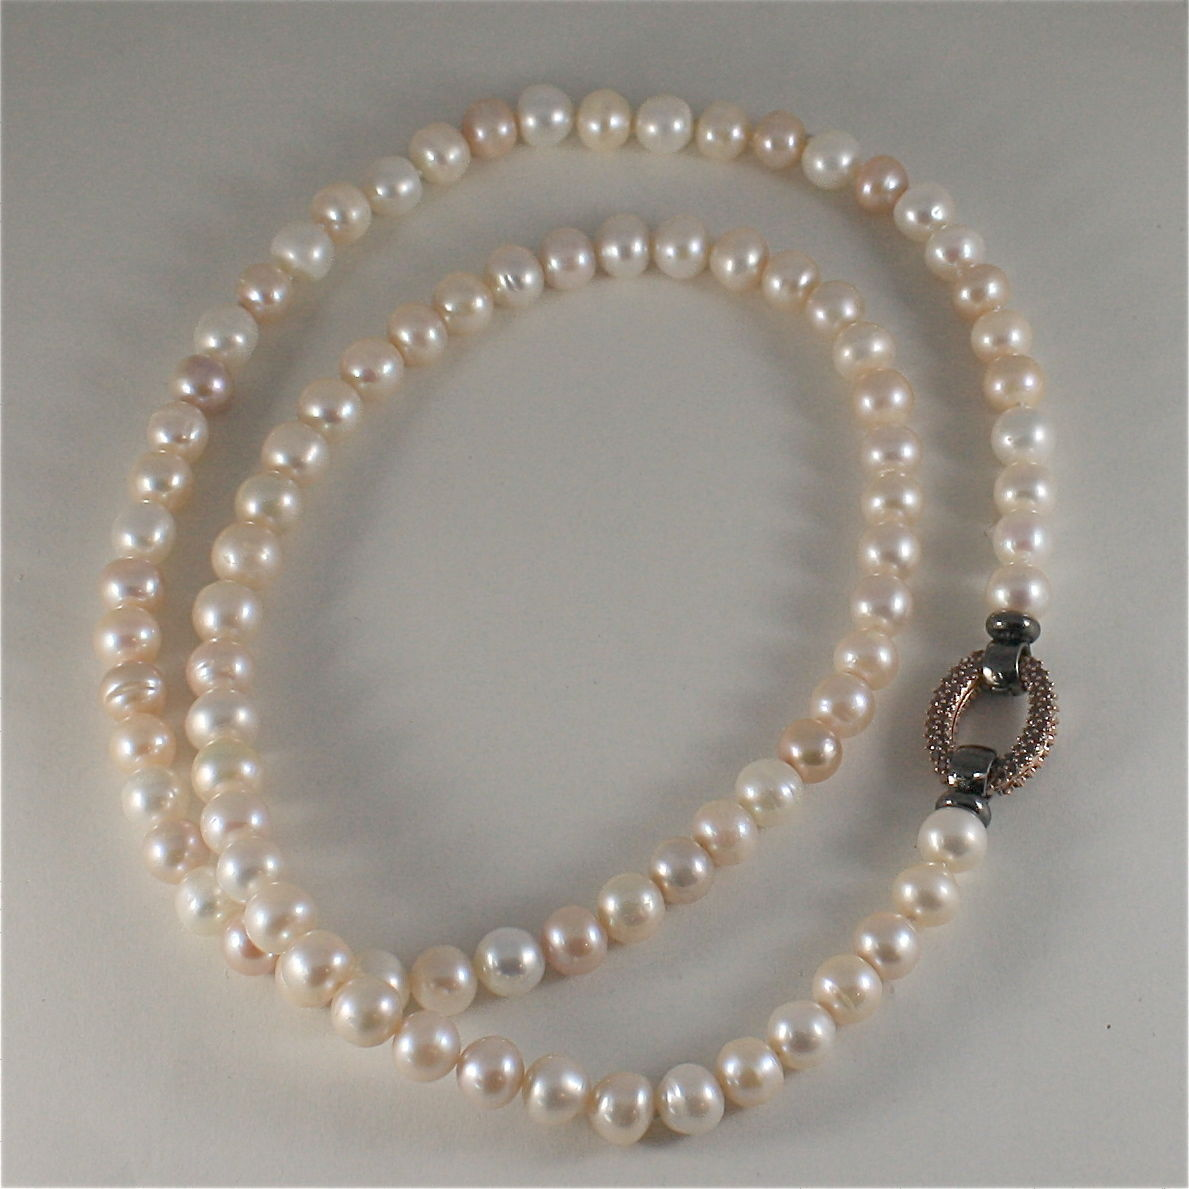 .925 SILVER BURNISH NECKLACE WITH FW PEARLS AND A BEAUTIFUL CLASP WITH CRYSTALS